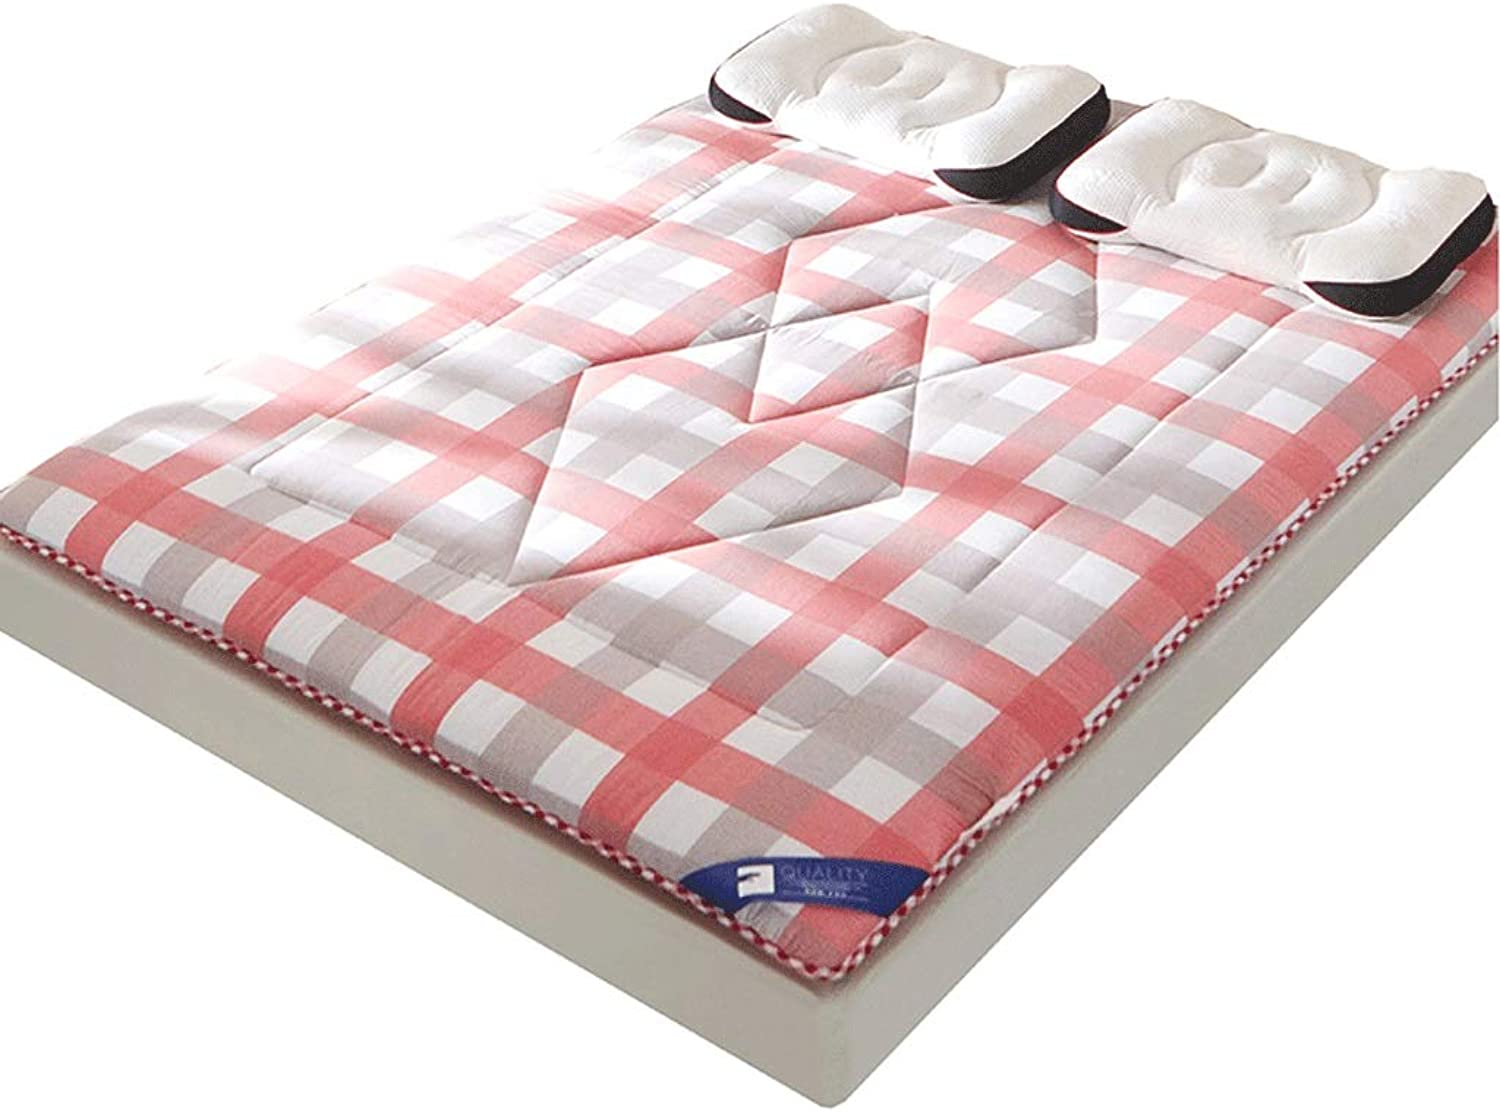 Cotton Mattress, Thickened Student Dormitory Sponge Pad, Household Bedding (color   B, Size   100x200cm)